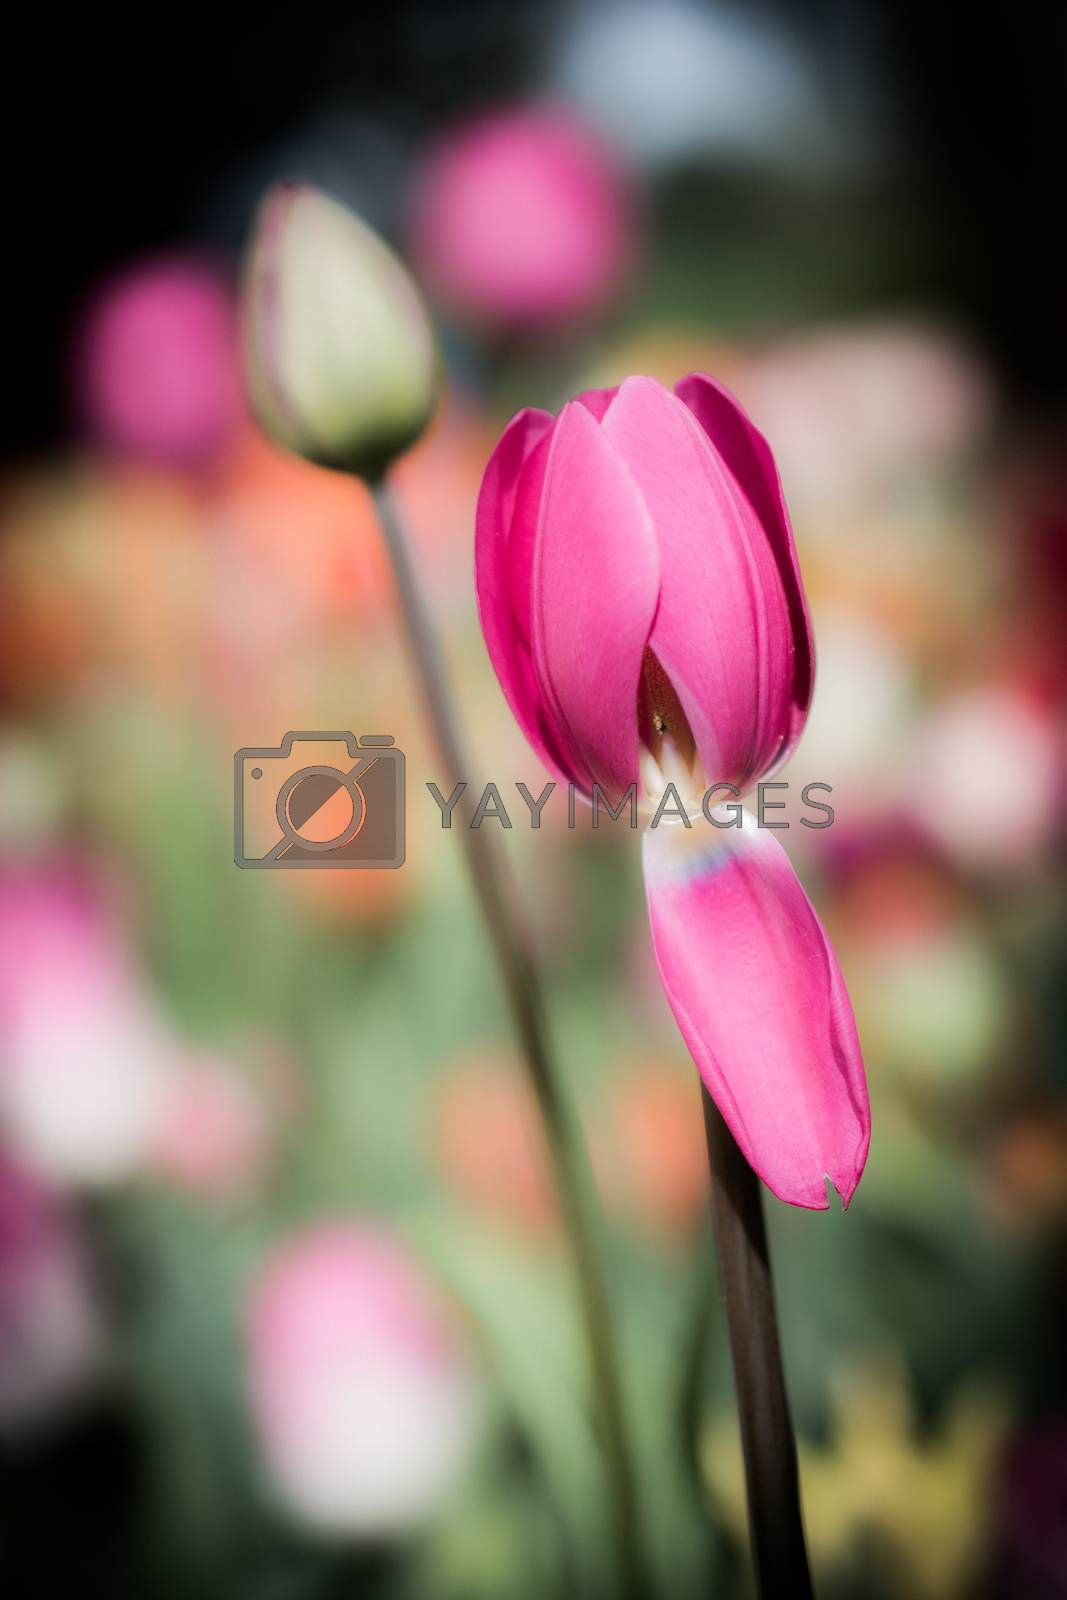 Beautiful tulips flower for postcard beauty concept design